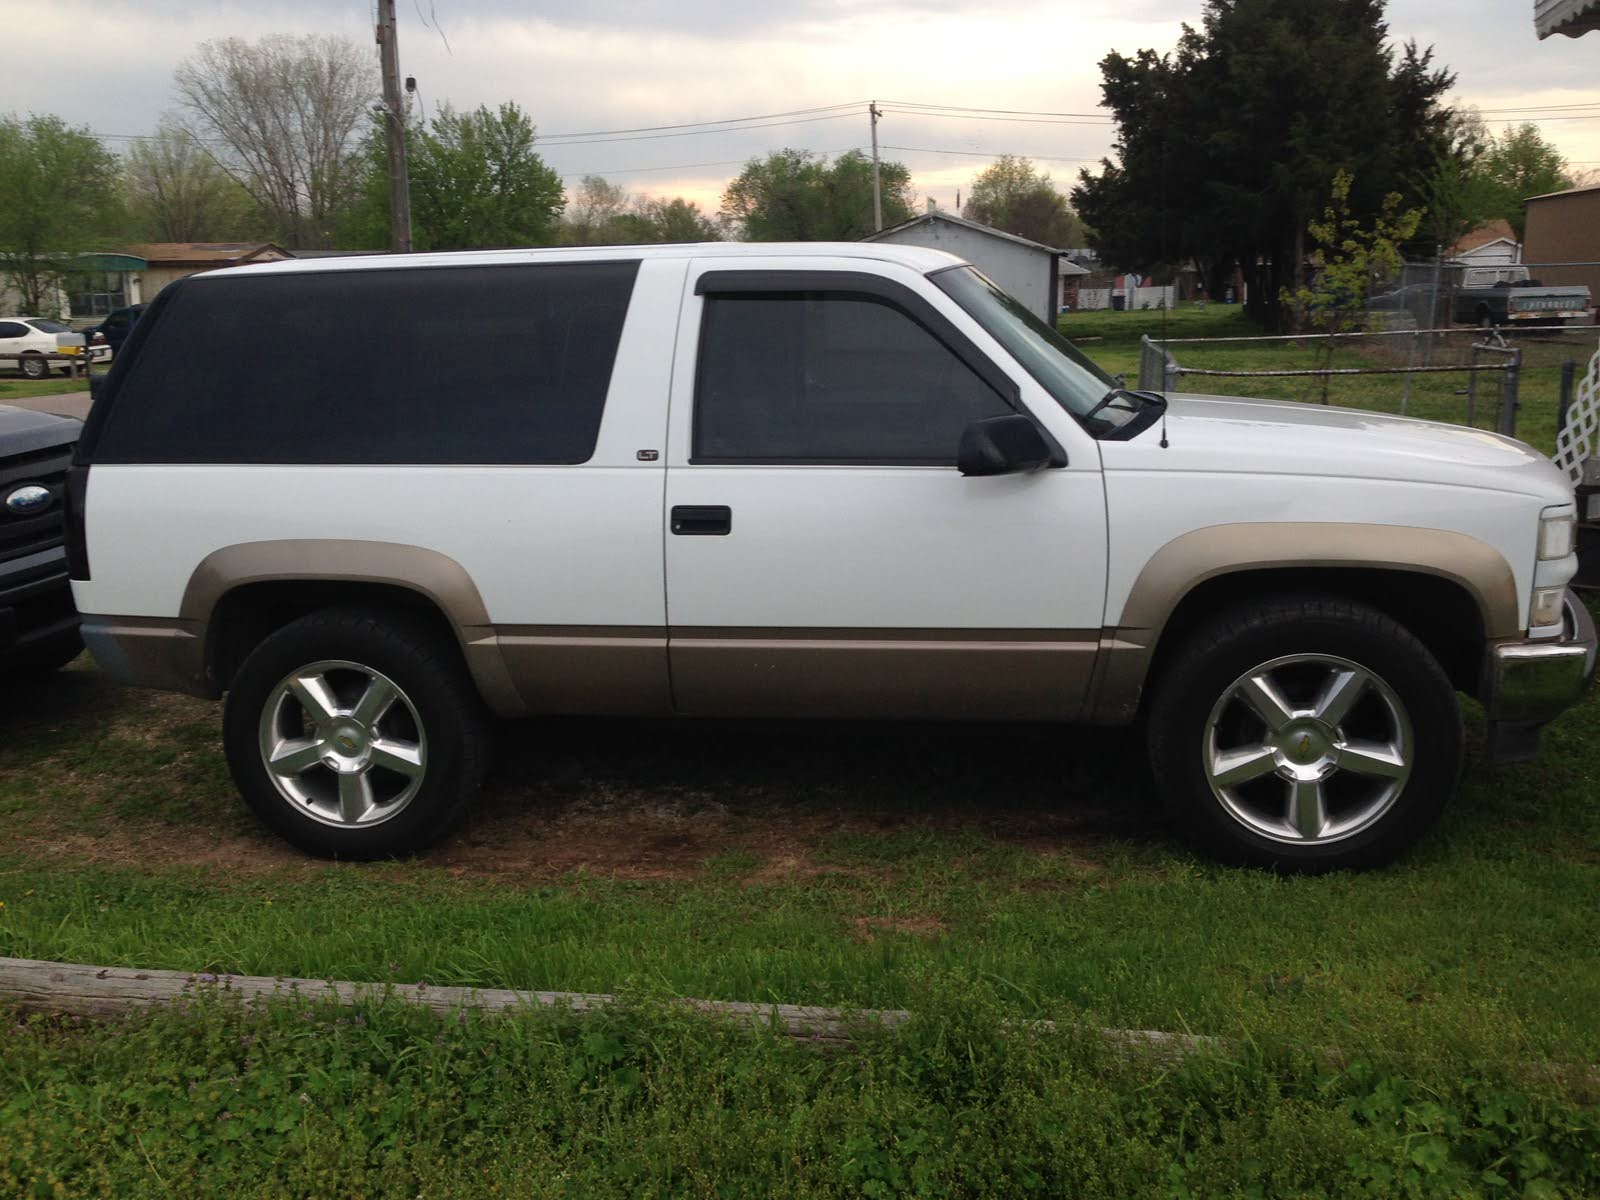 Chevrolet Tahoe Questions I Have 1998 4x4 2 Dr Tahoe It Had The